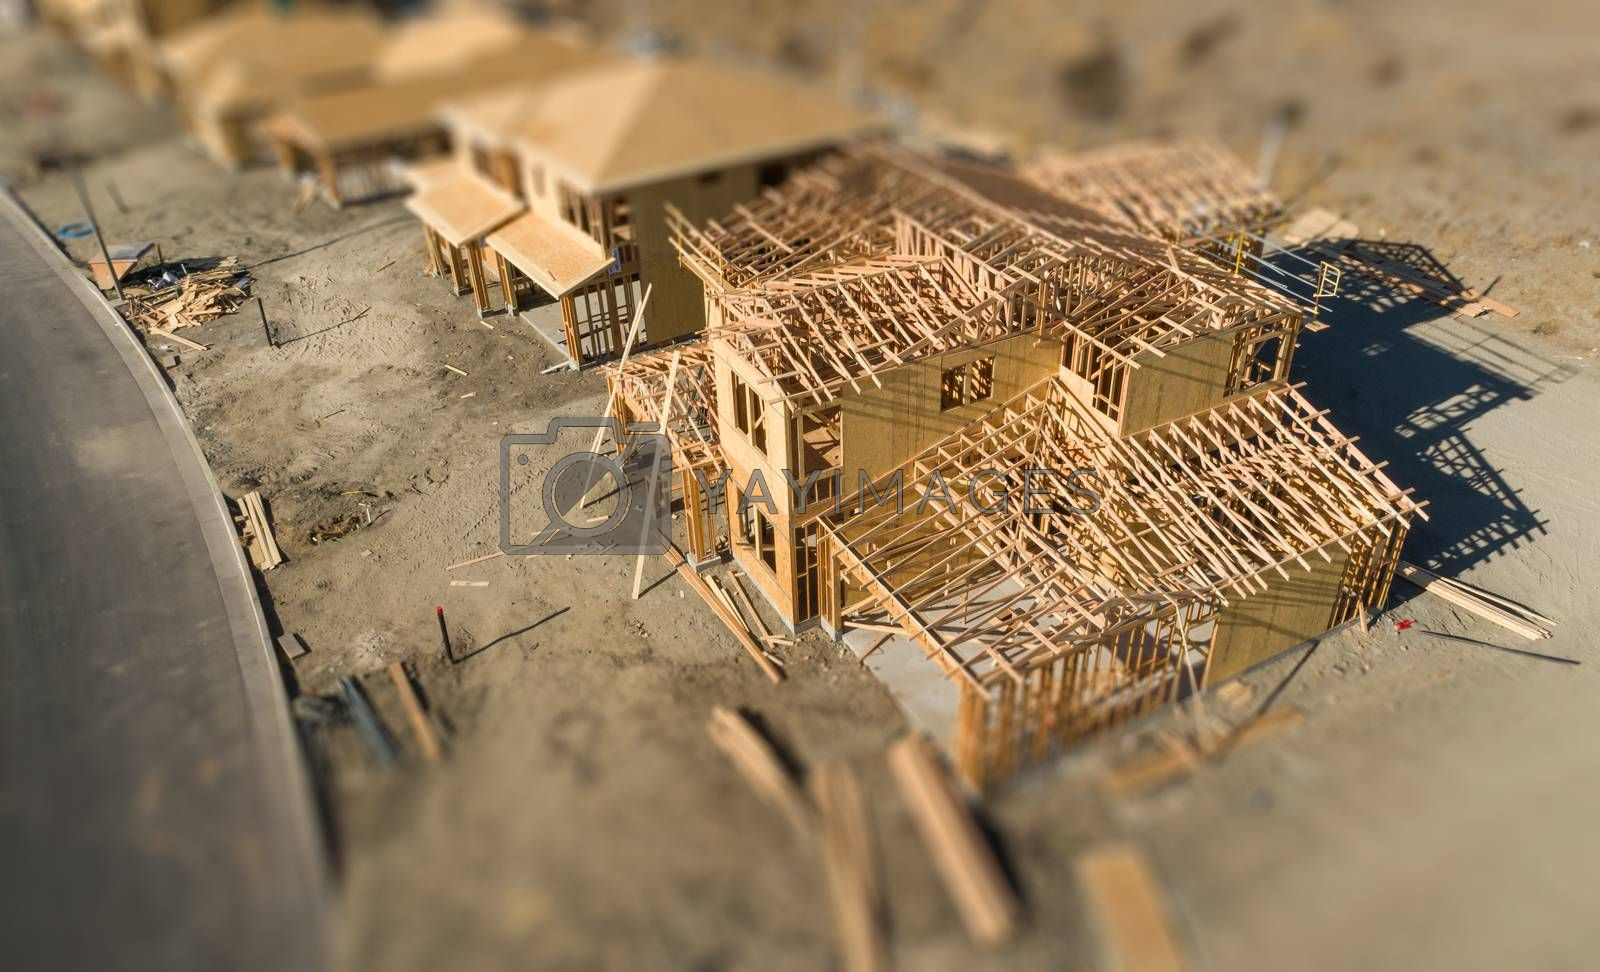 Aerial View of New Homes Construction Site with Tilt-Shift Blur by Feverpitched